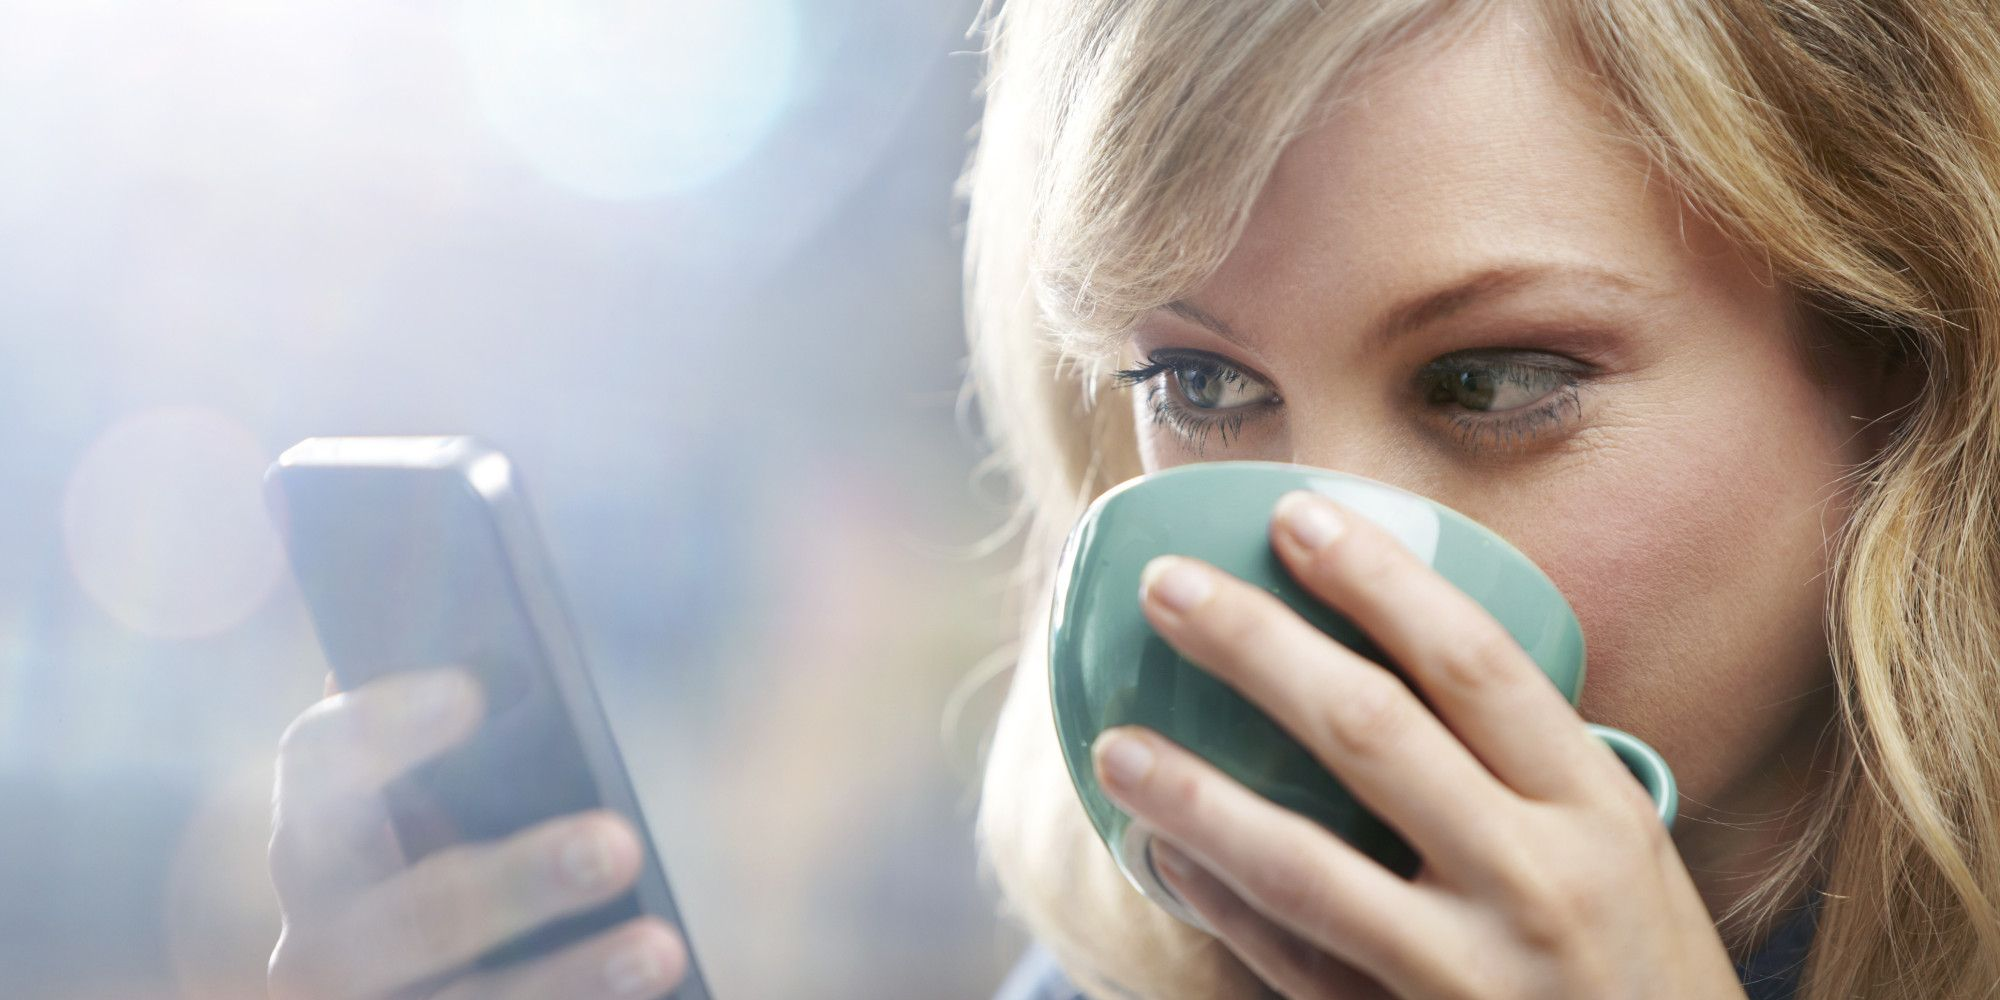 7 Ways Your Smartphone Can Actually Make You Happier